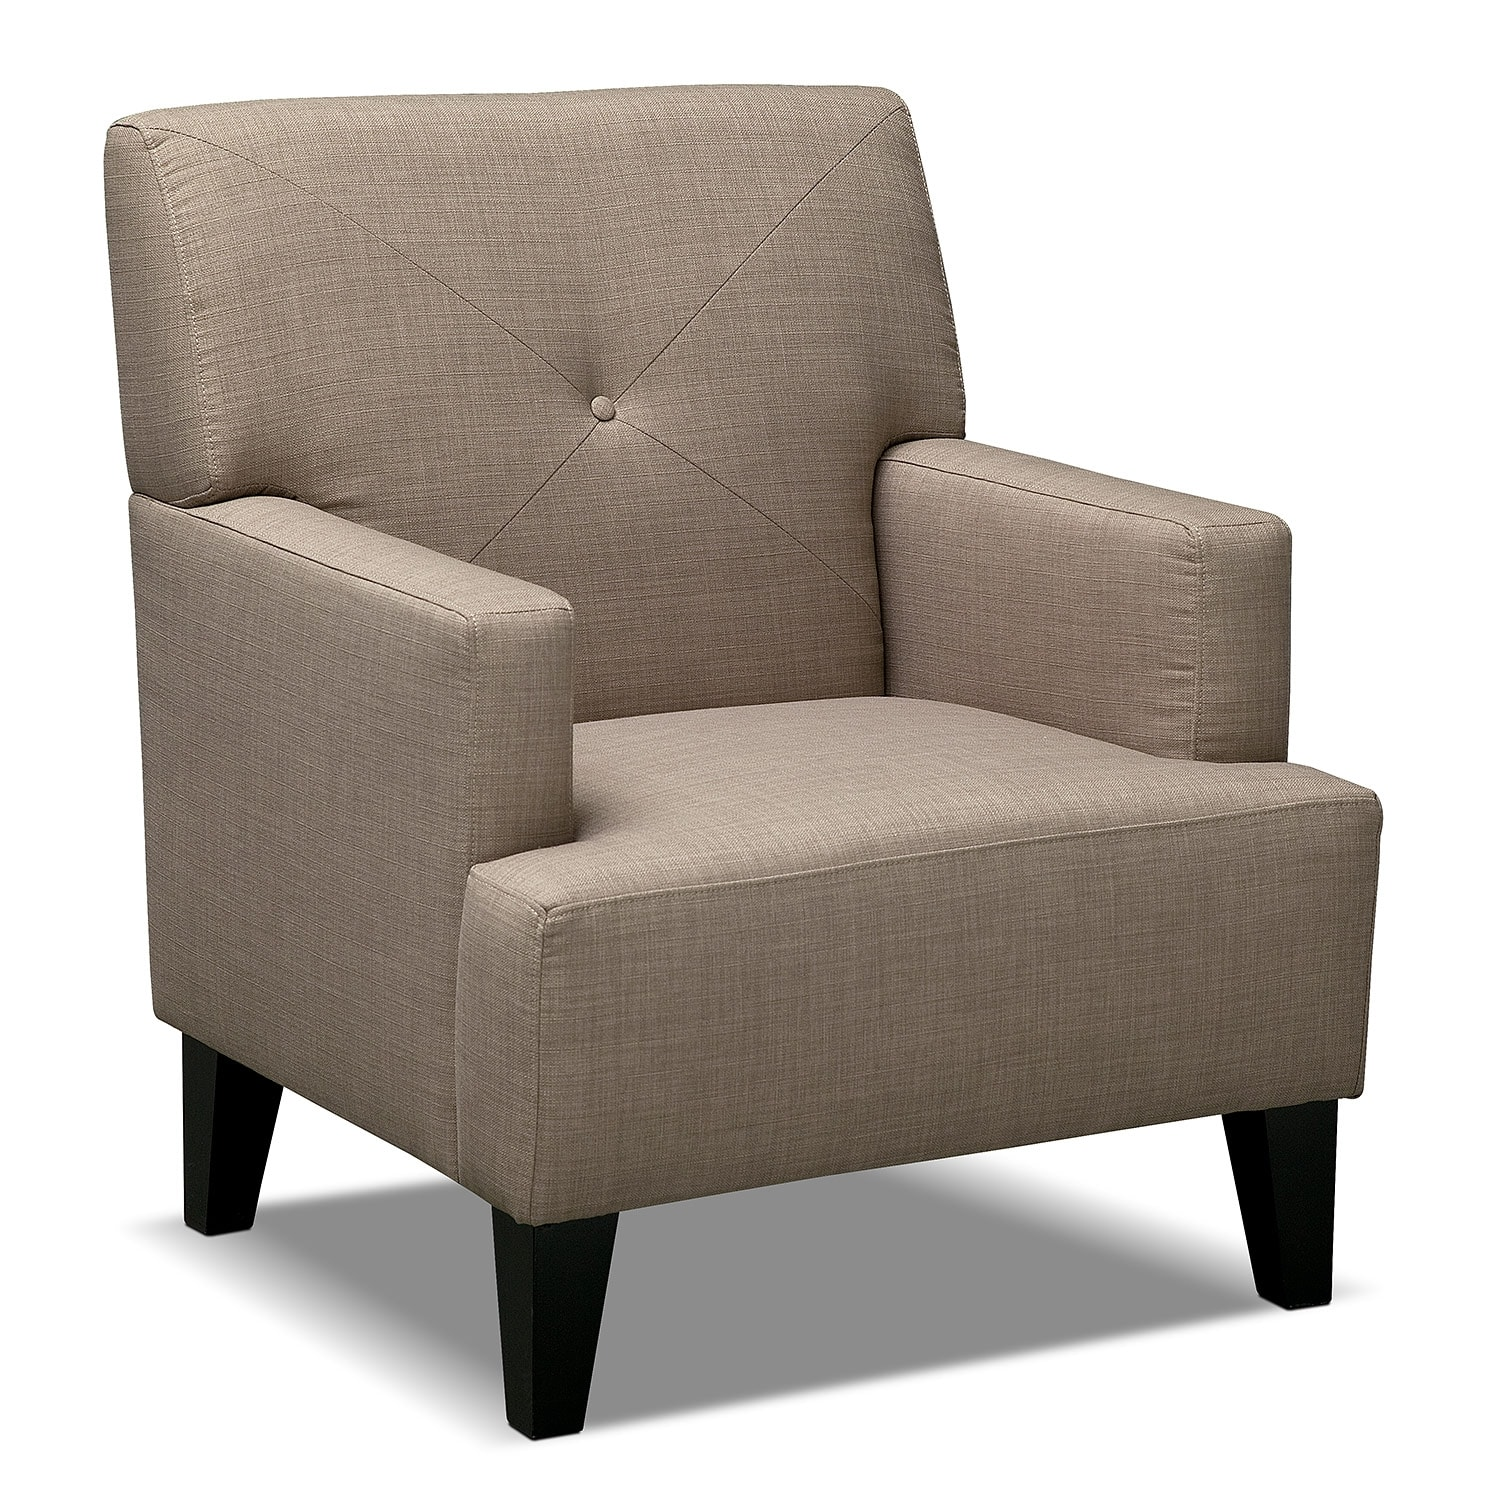 Avalon accent chair wheat value city furniture for Living room chairs